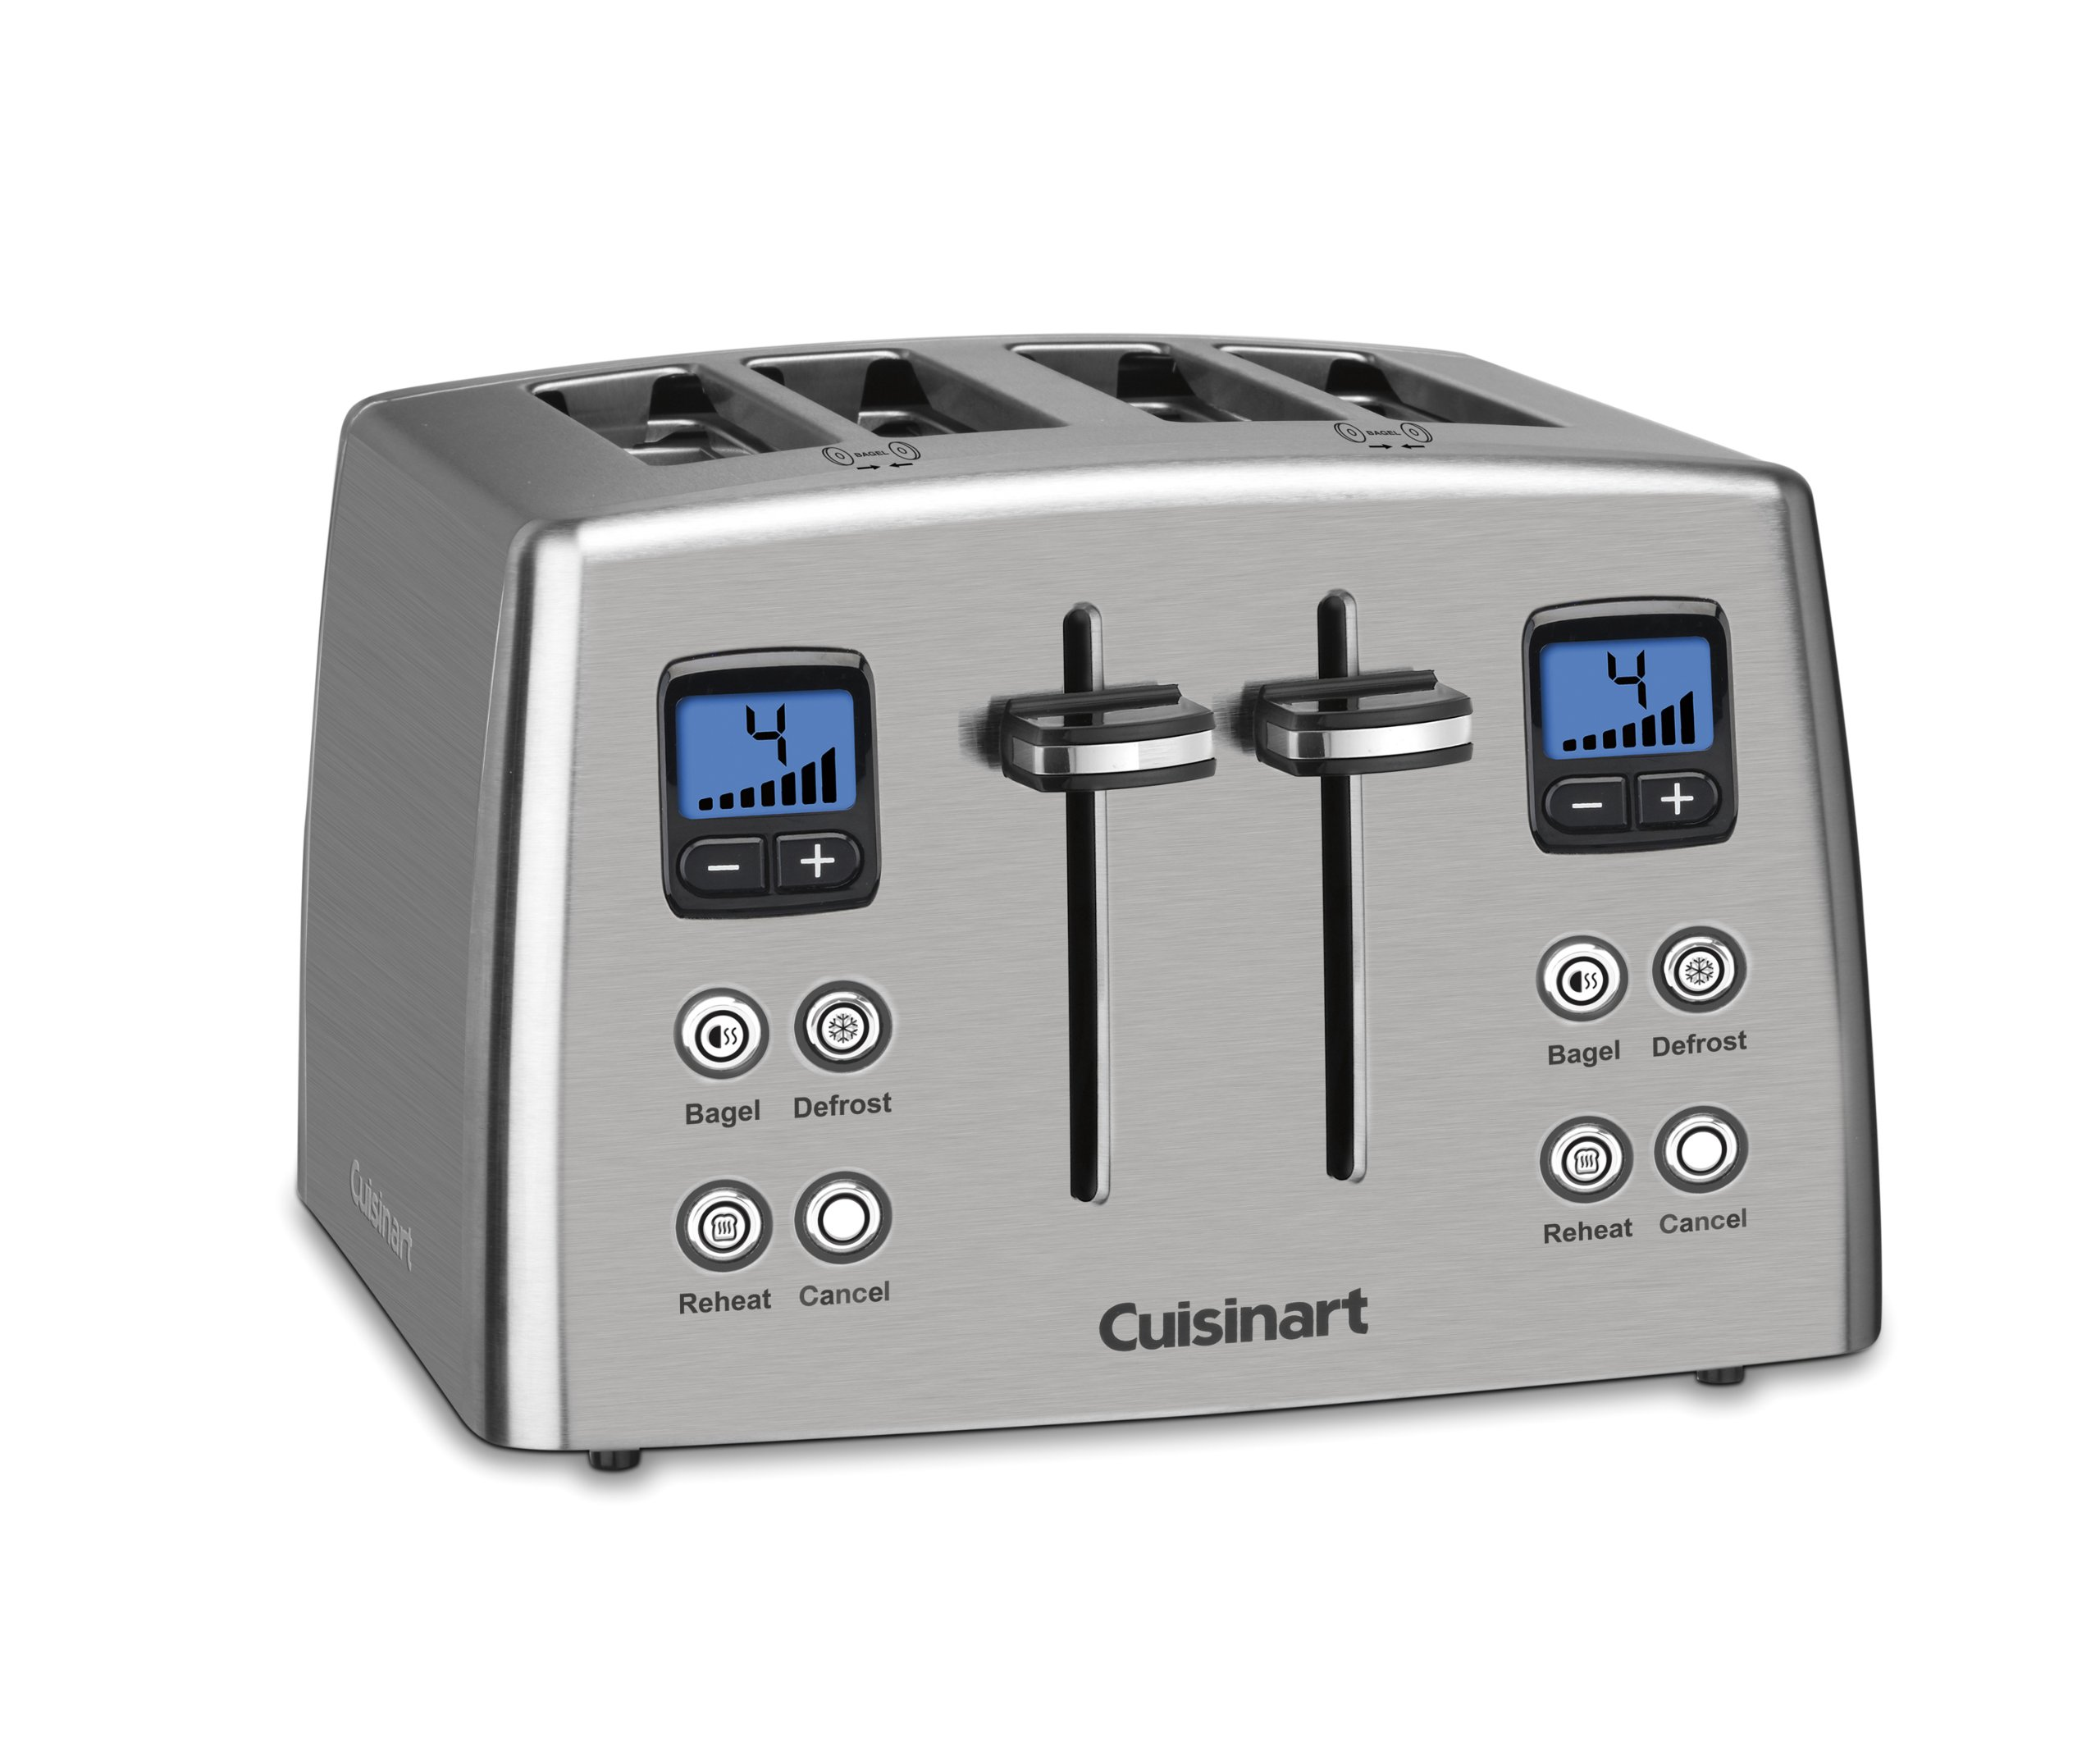 Cuisinart CPT-435 Countdown 4-Slice Stainless Steel Toaster by Cuisinart